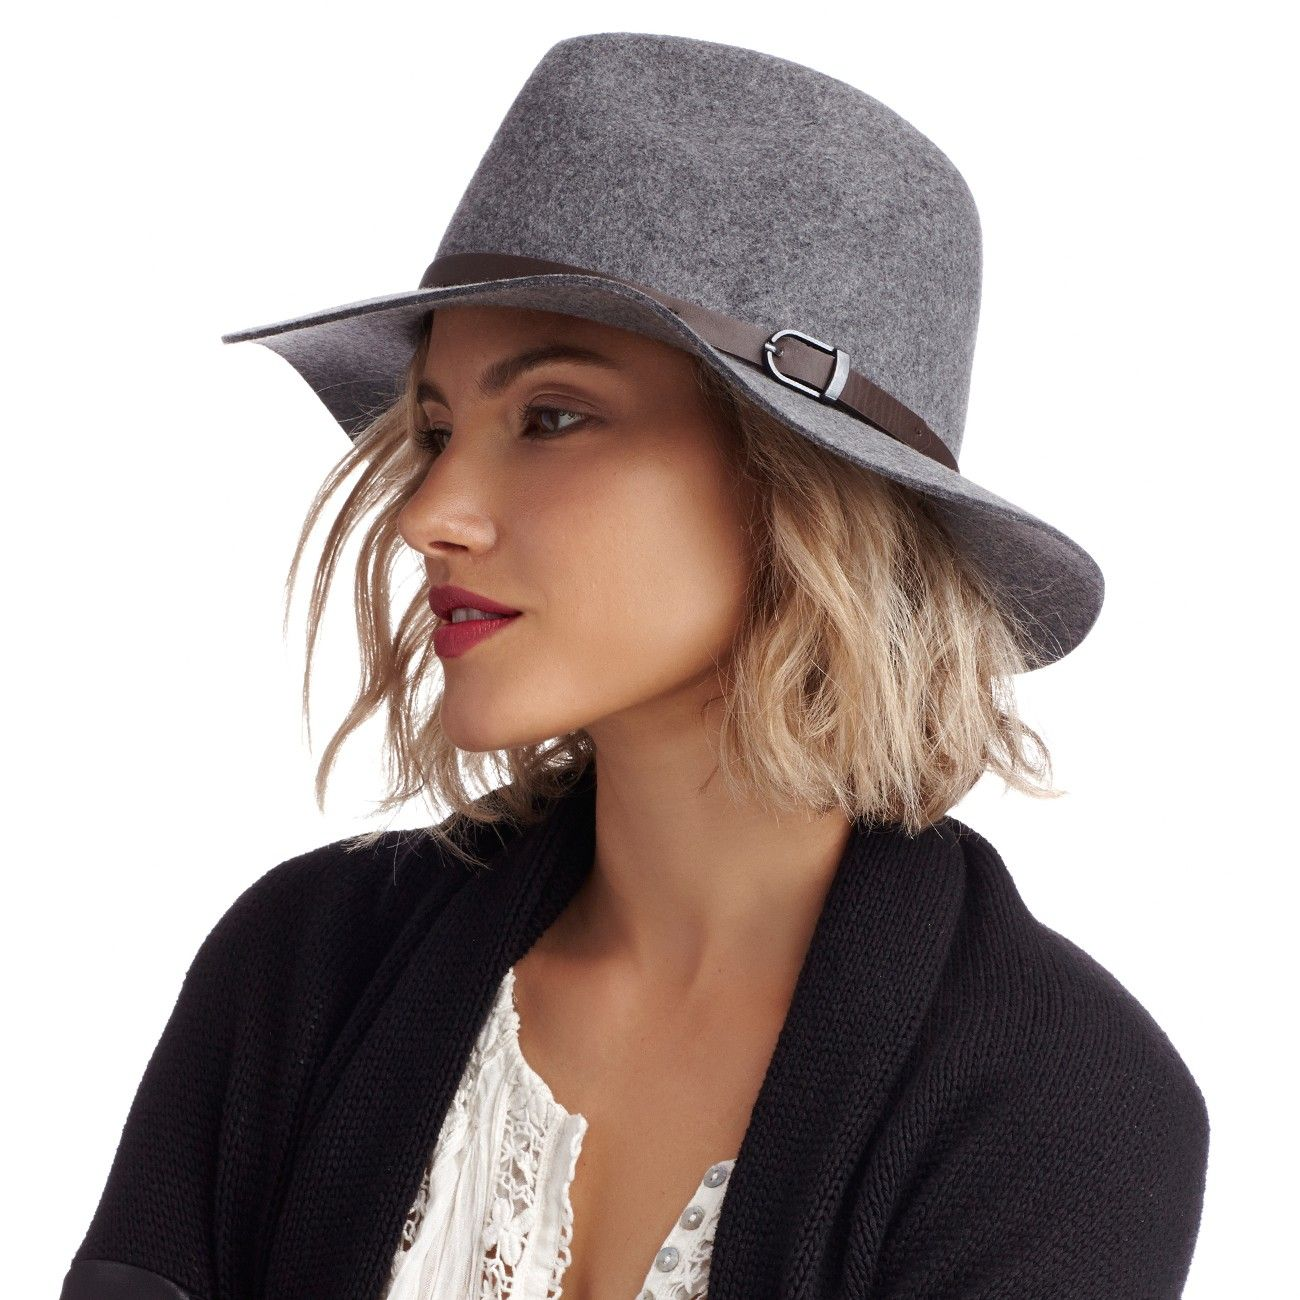 Sole Society - Women s Shoes at Surprisingly Affordable Prices. Charcoal Wool  Panama Hat Cute Hats ... 5f94bc5f1037